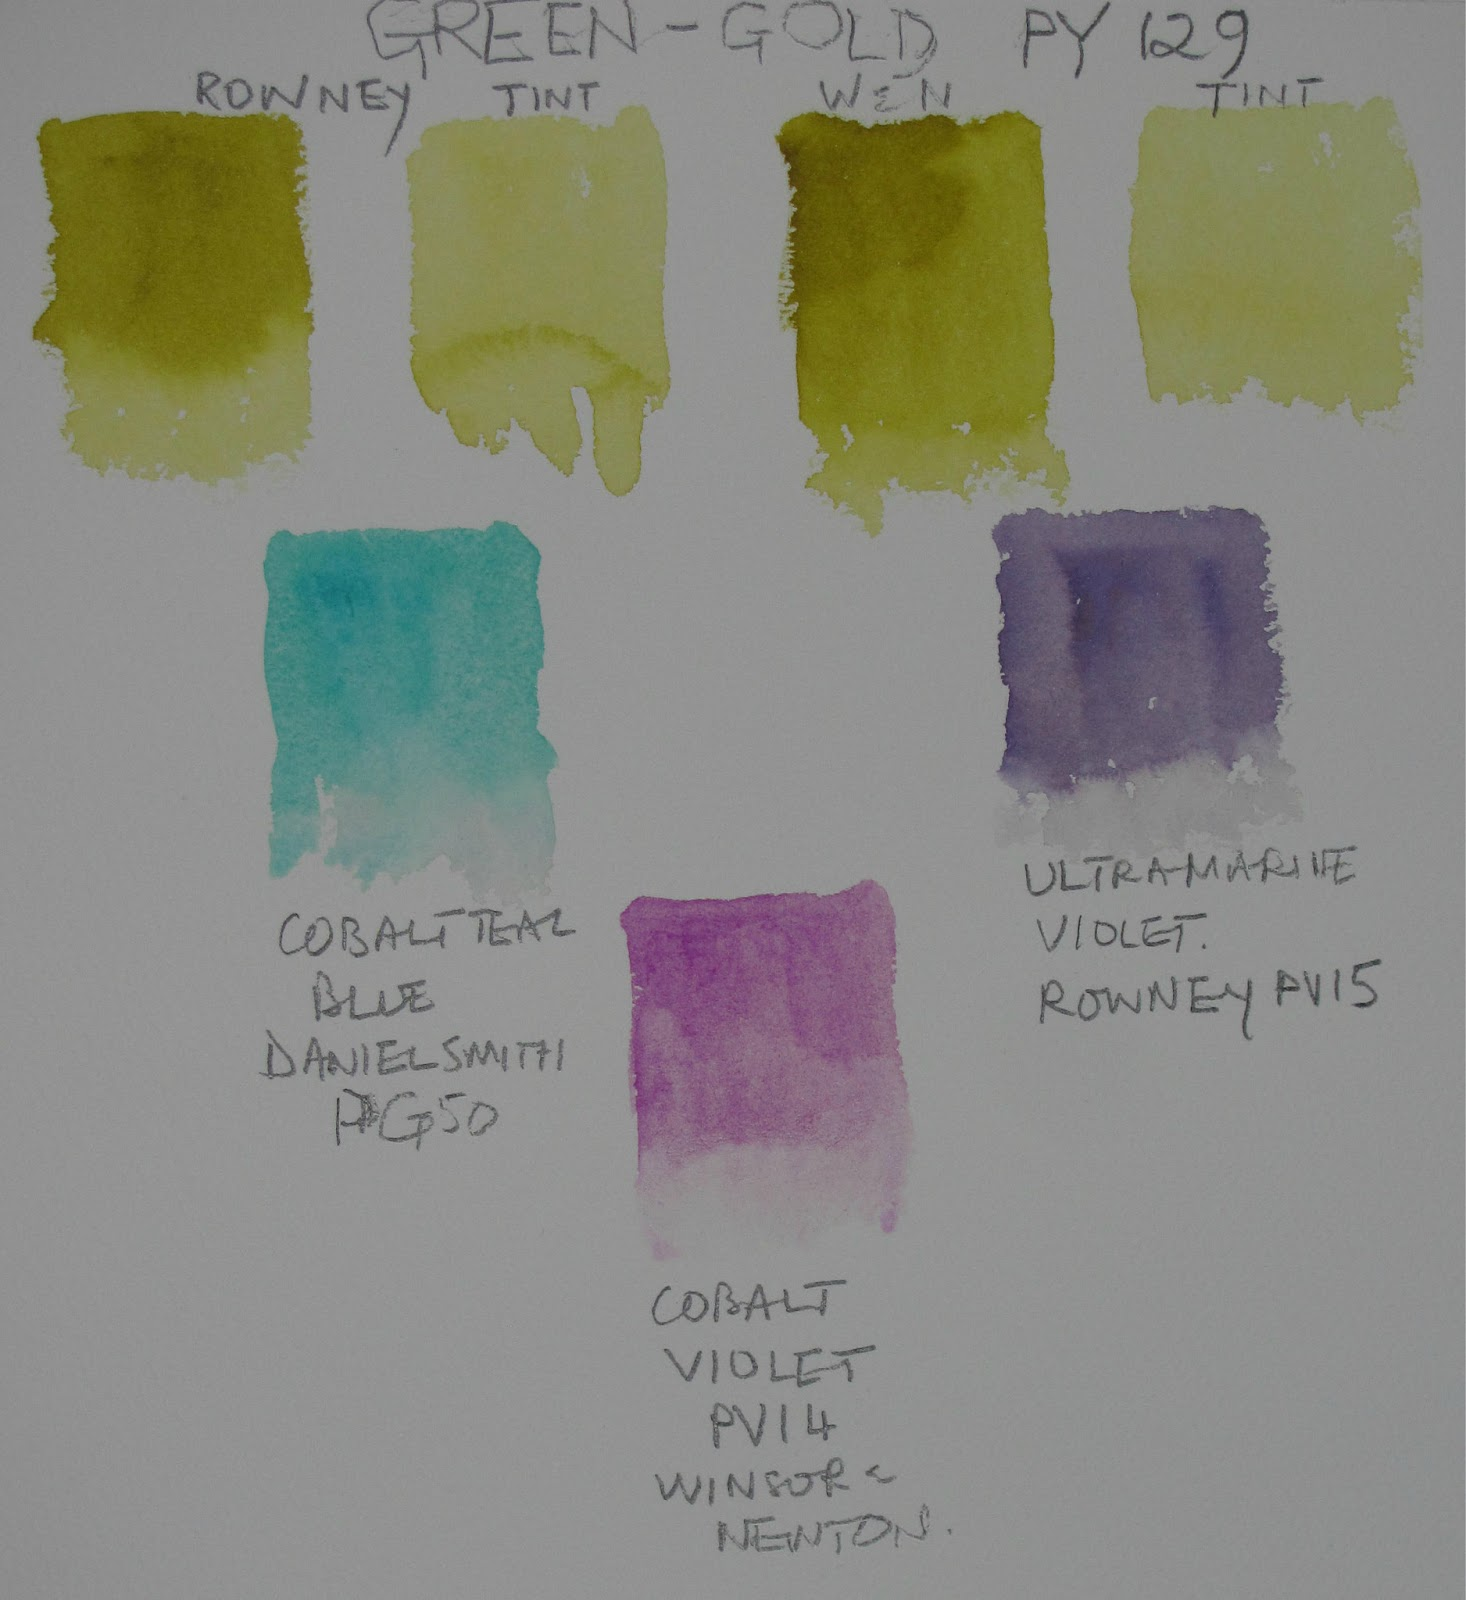 The Watercolour Log Green Gold Pigment Yellow 129 Py129